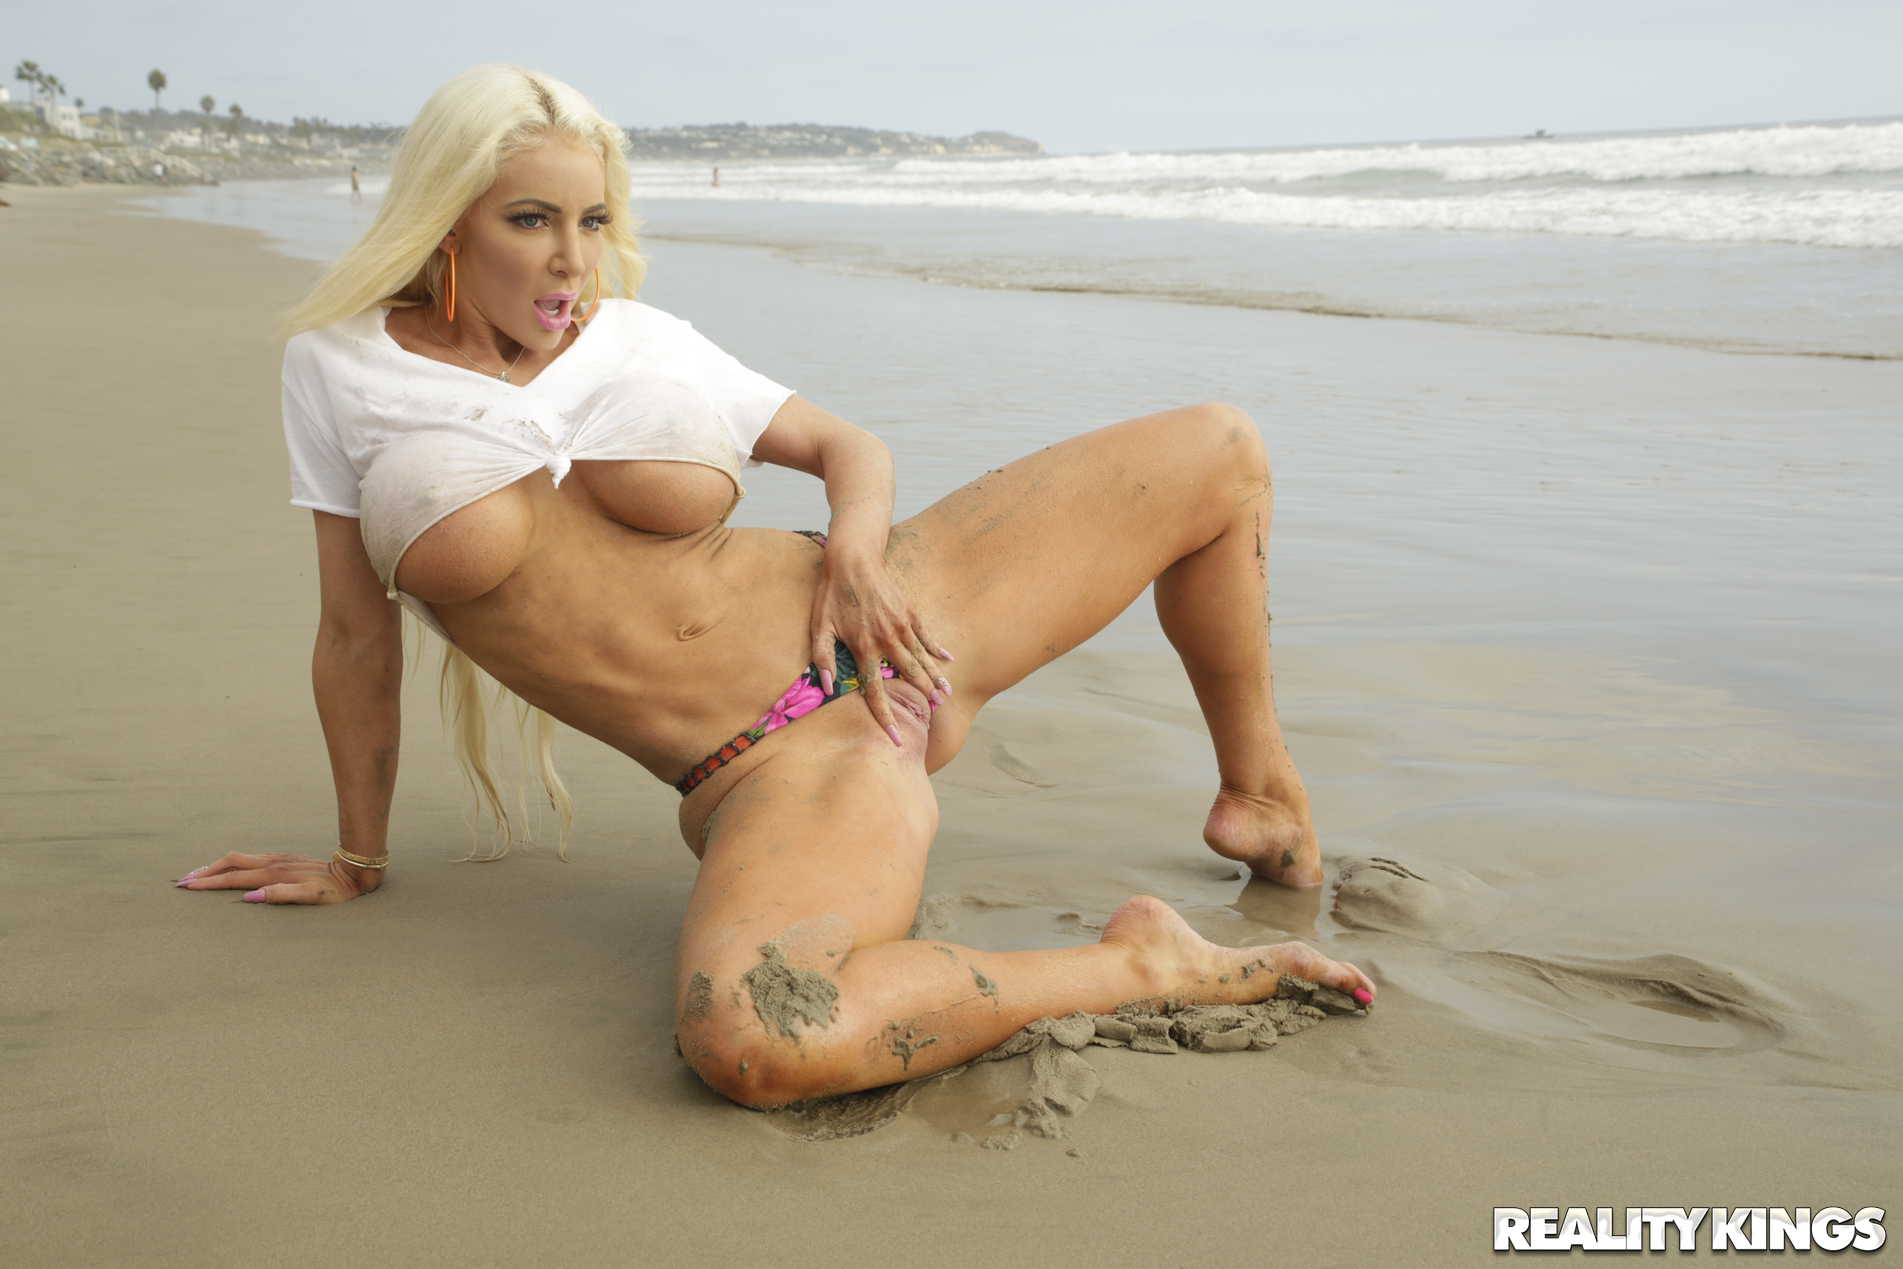 Reality Kings 'Vacation Vibes' starring Nicolette Shea (Photo 77)